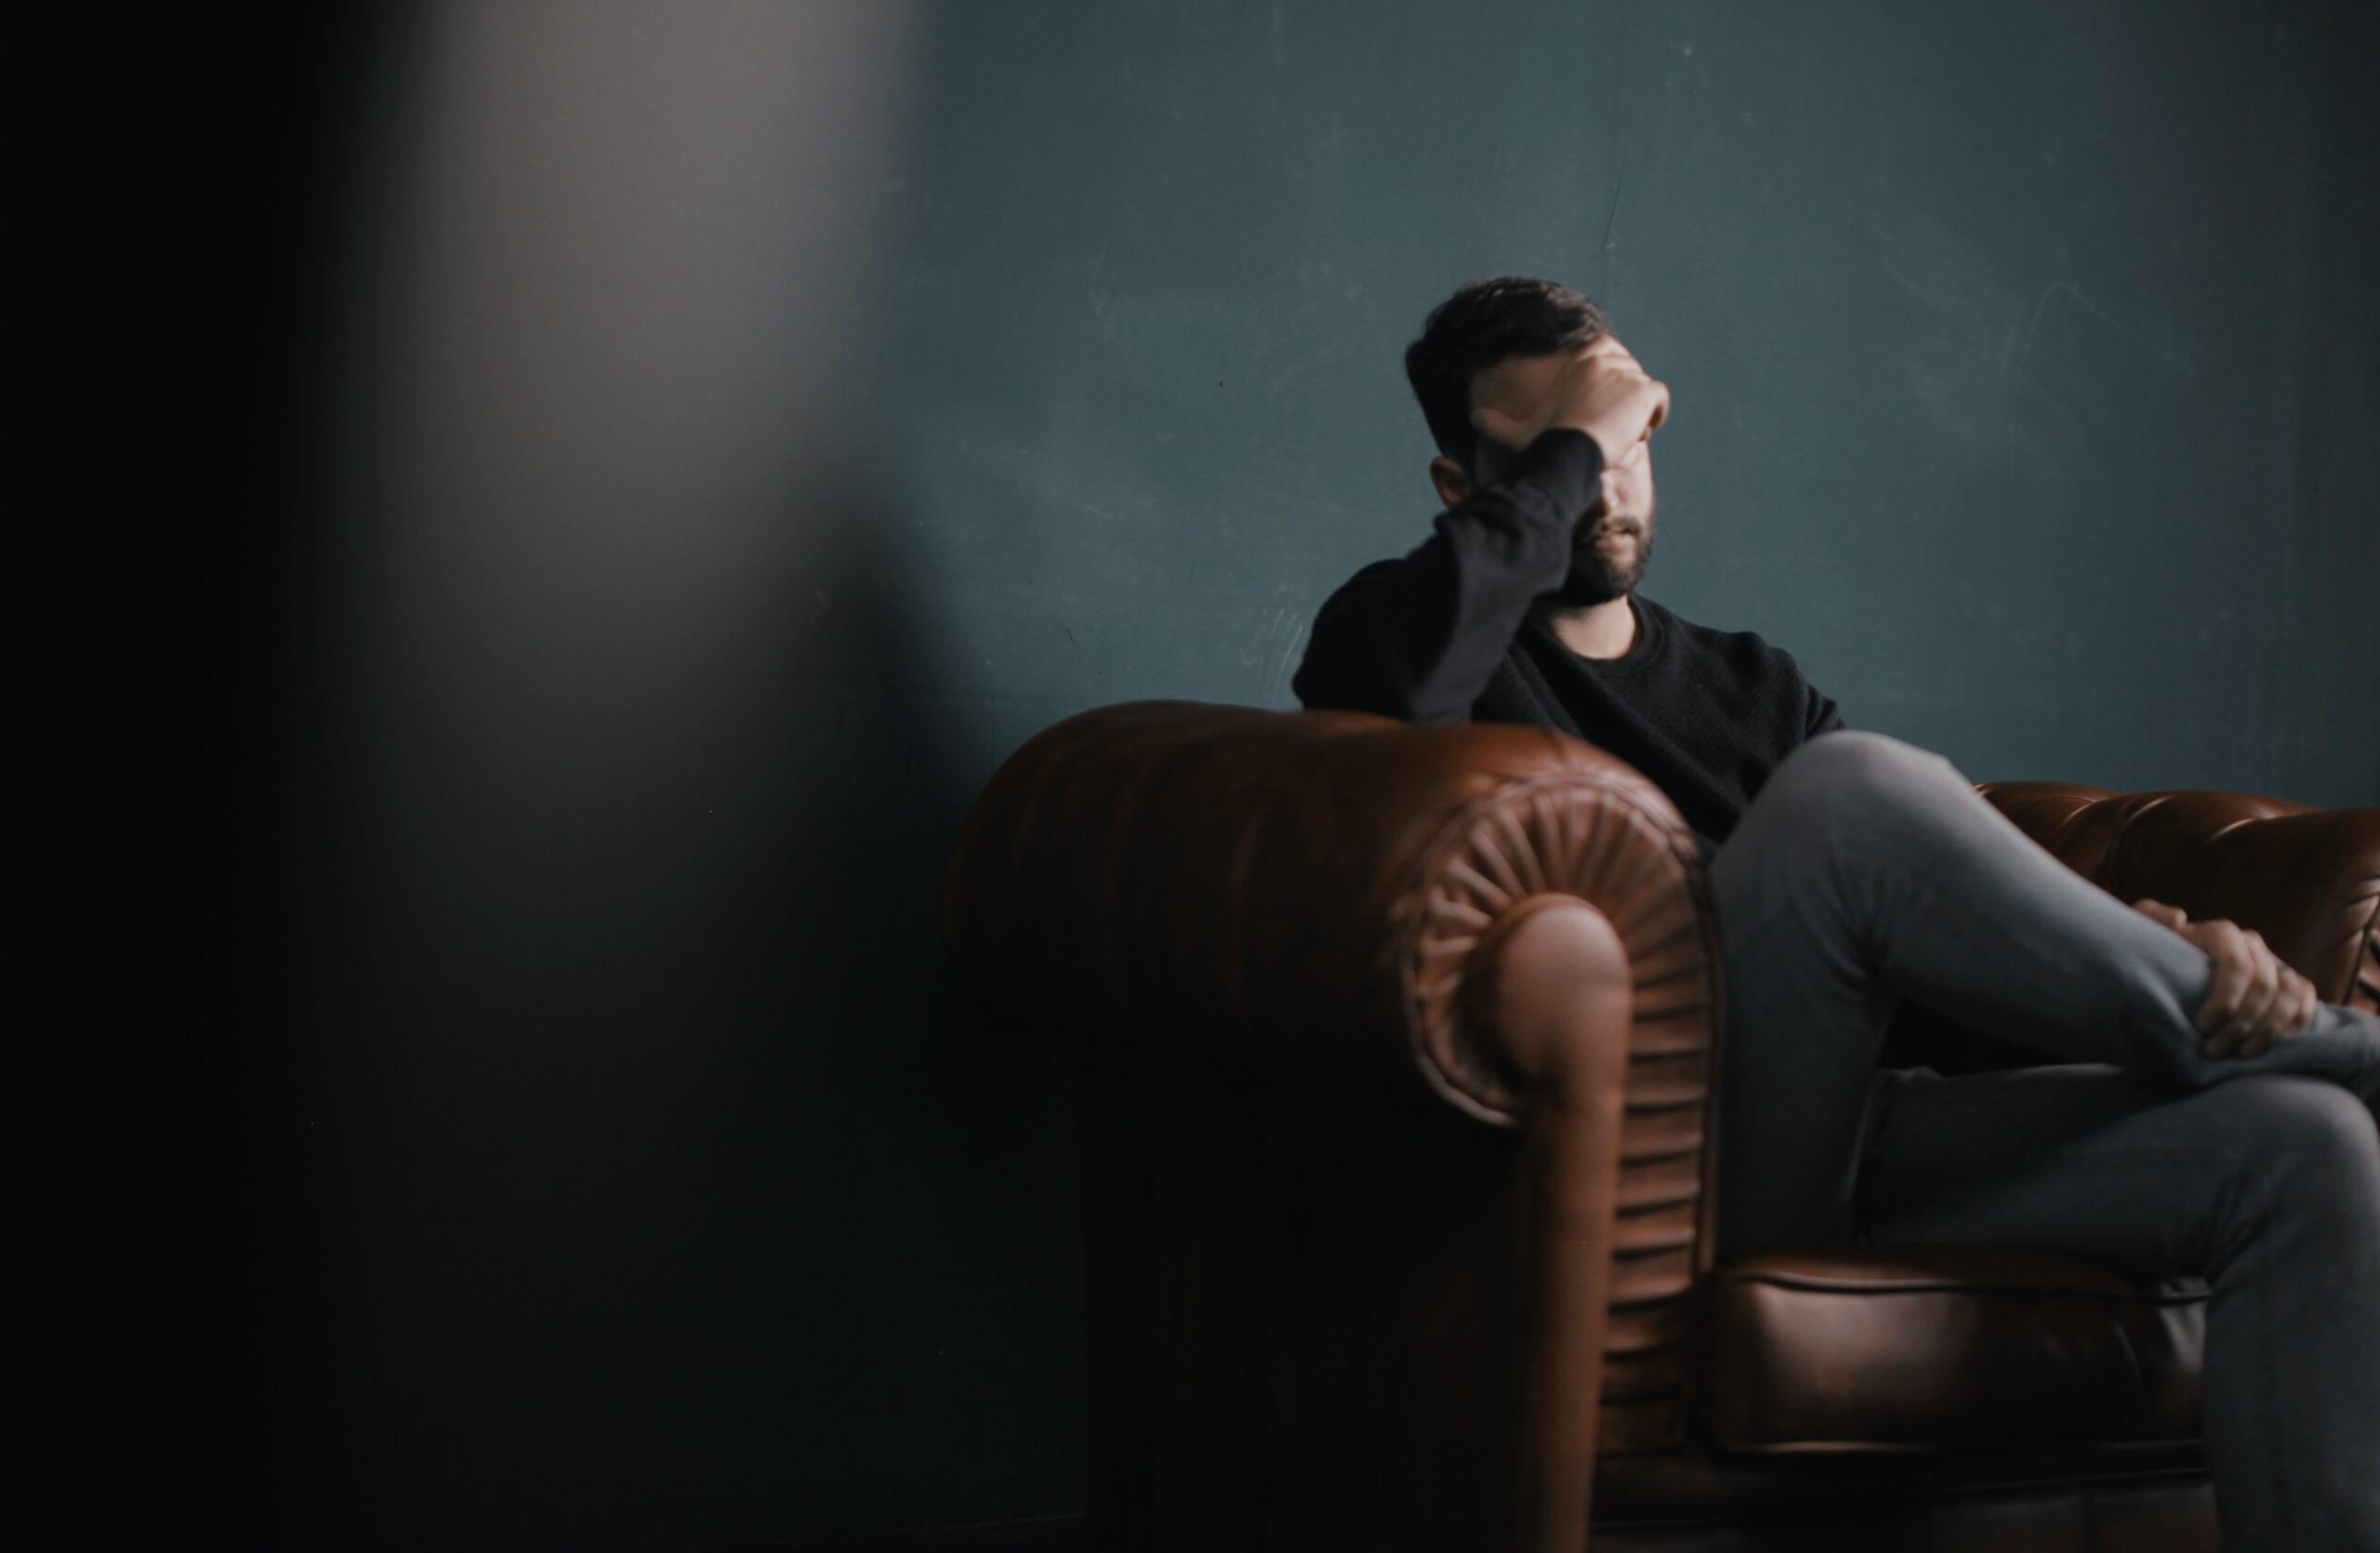 How do you respond to a mental health crisis? Here are six things to keep in your tool belt in case you or a loved one experience a crisis.